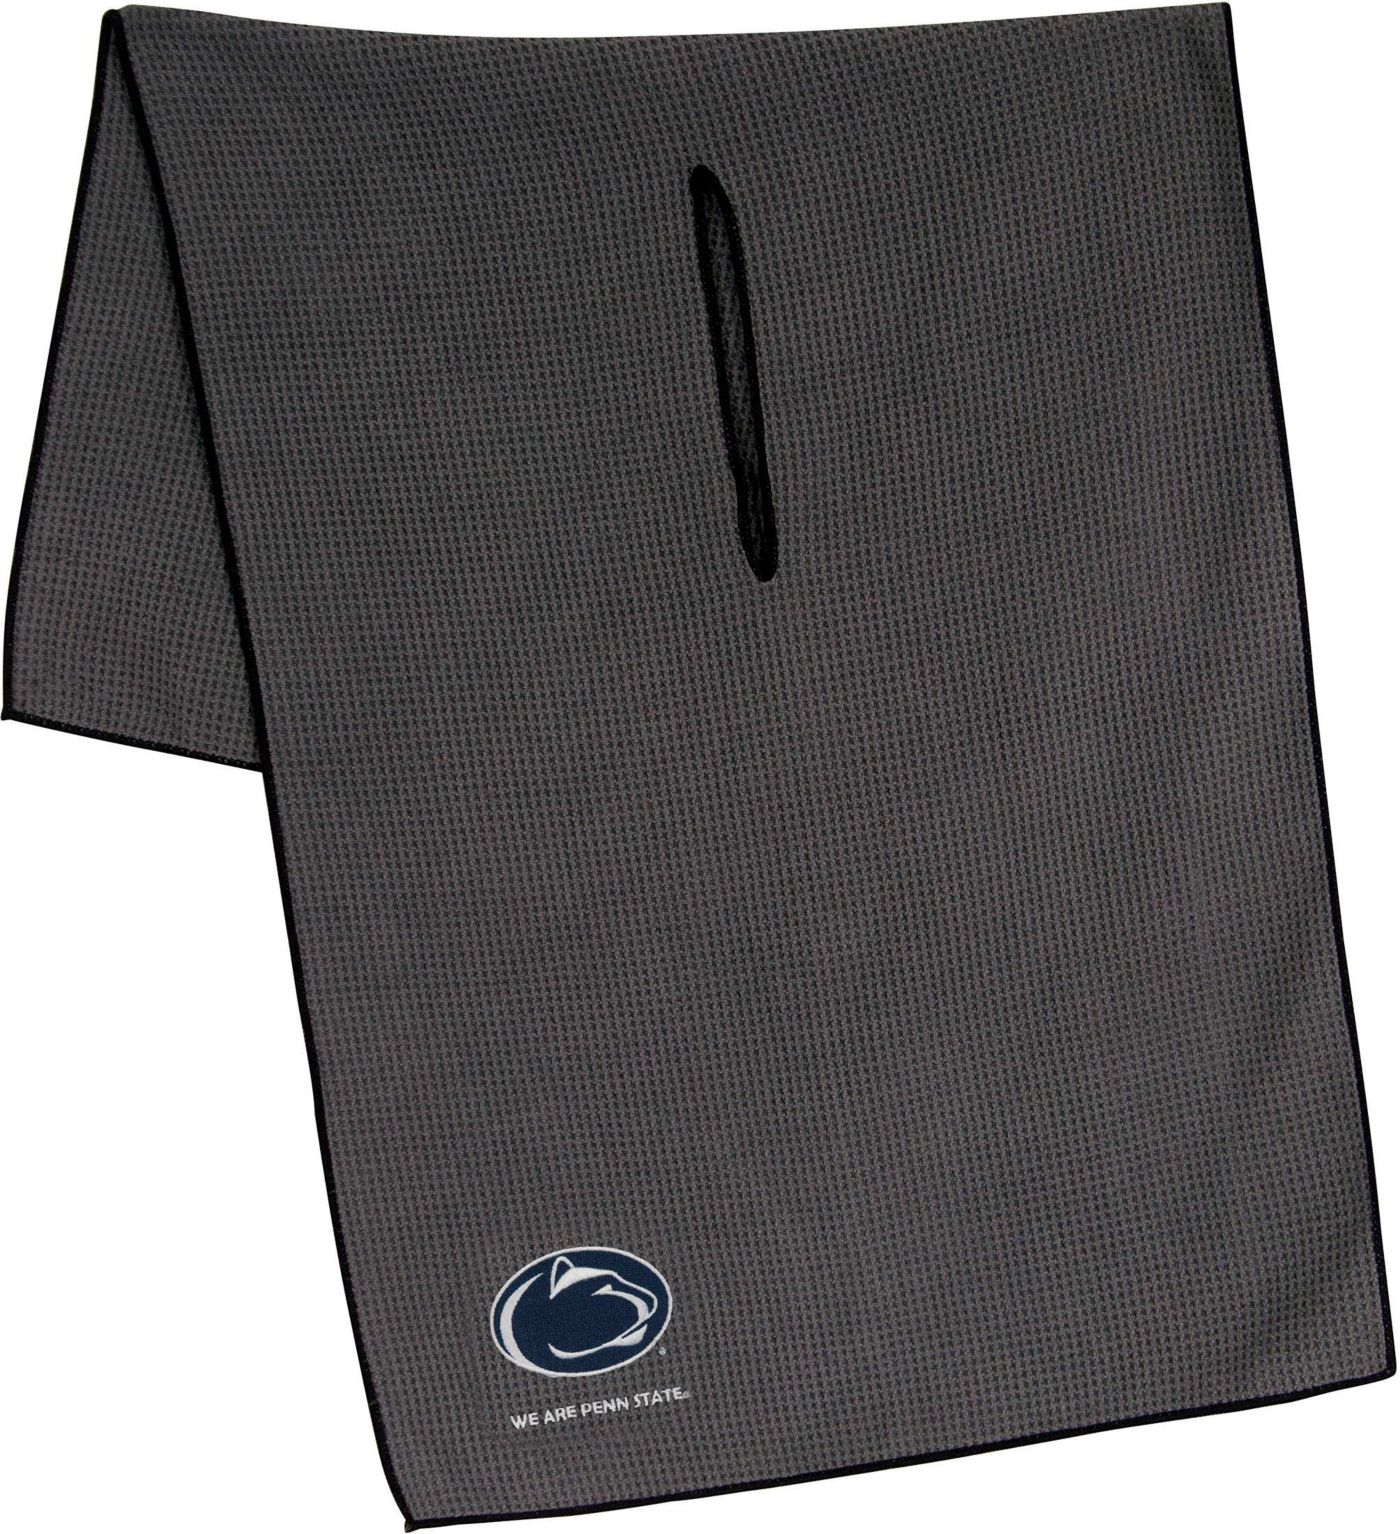 "Team Effort Penn State Nittany Lions 19"" x 41"" Microfiber Golf Towel"